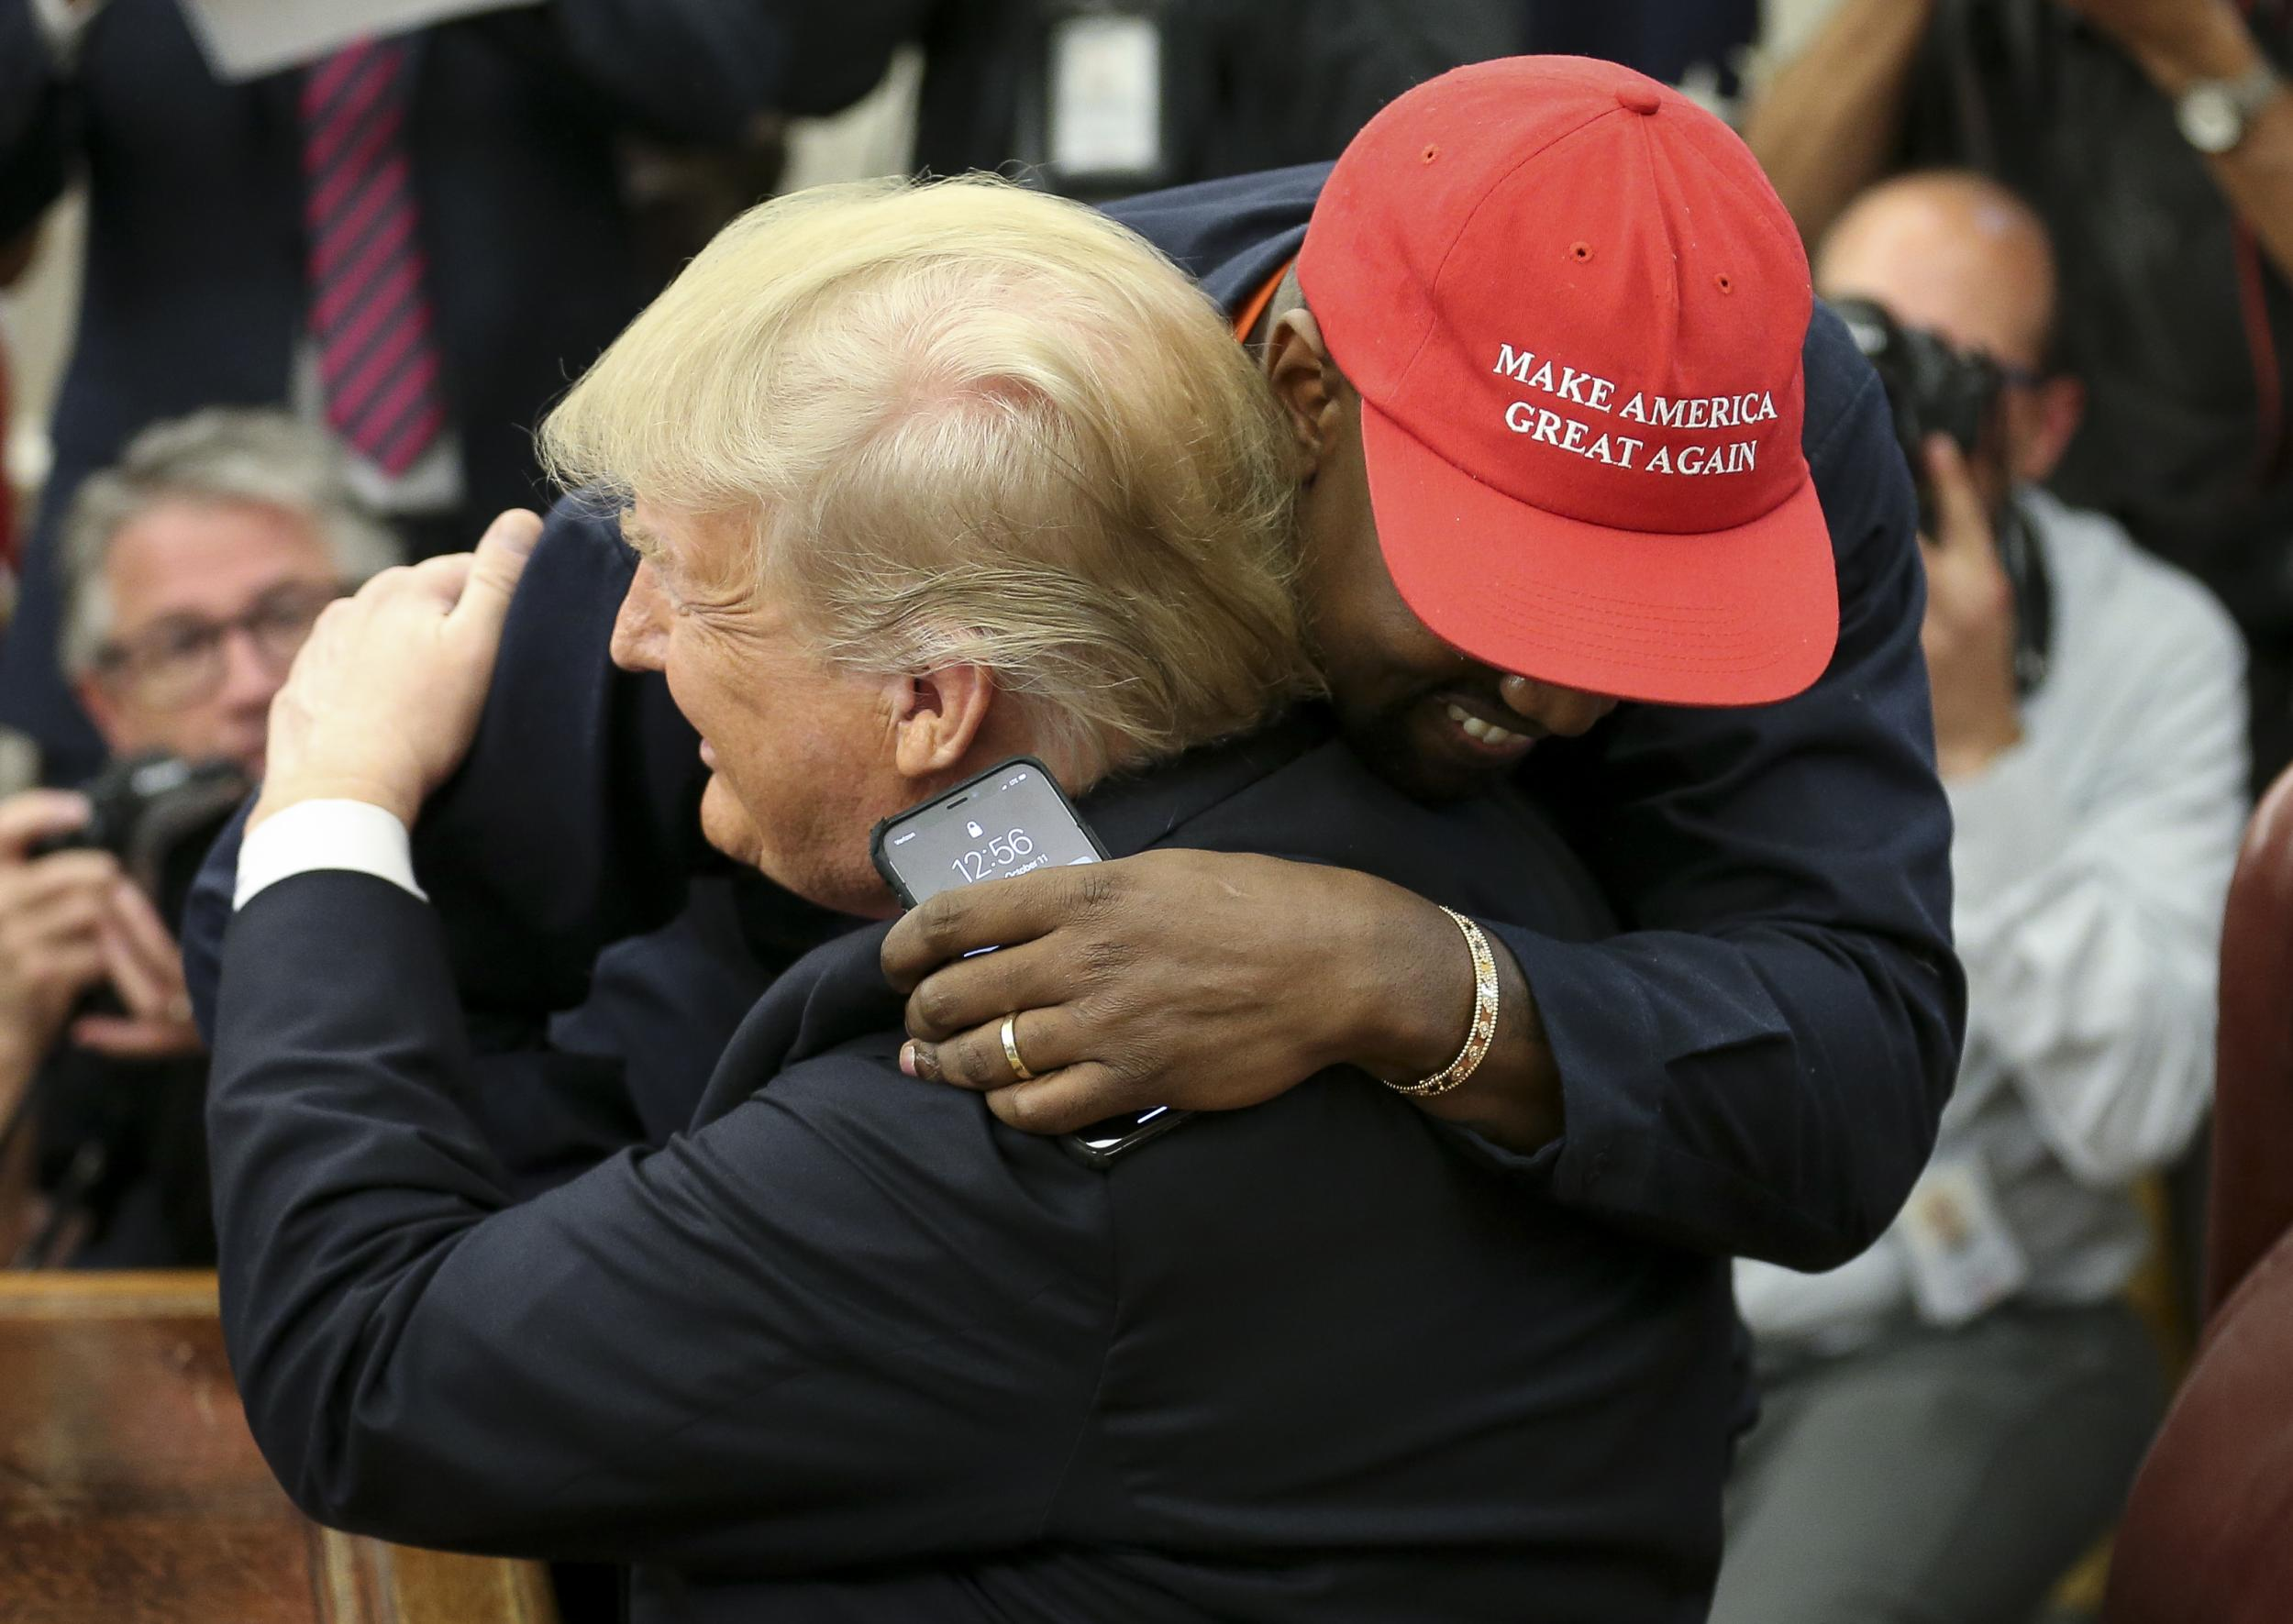 Kanye West's meeting with Trump: The strongest reactions, from TI and Axl Rose to Frankie Boyle